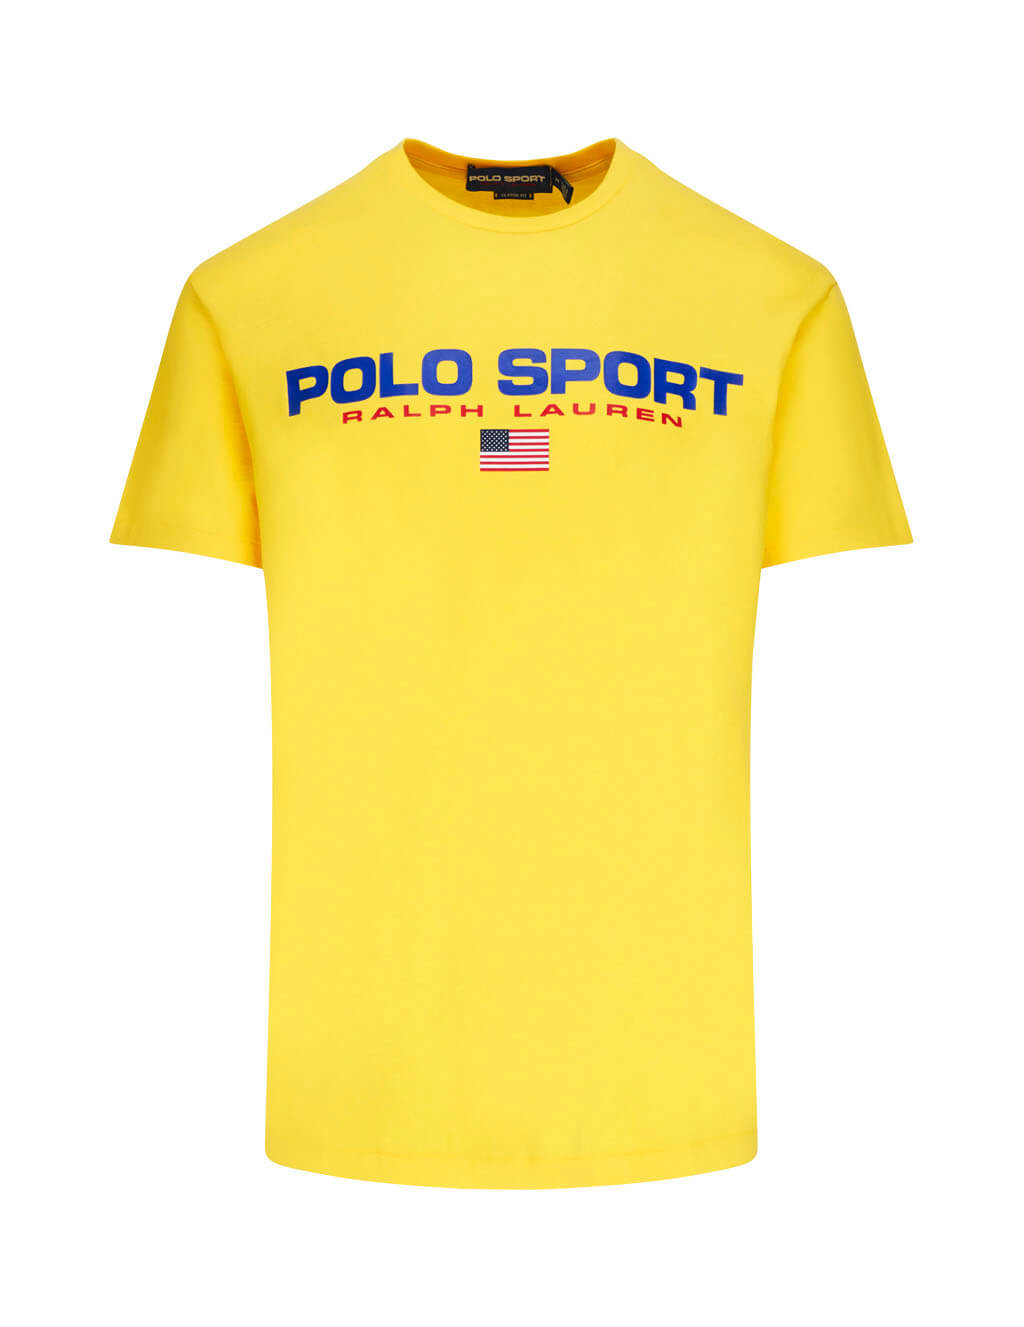 Polo Ralph Lauren Men's Giulio Fashion Chrome Yellow Classic Polo Sport Tee 710750444006